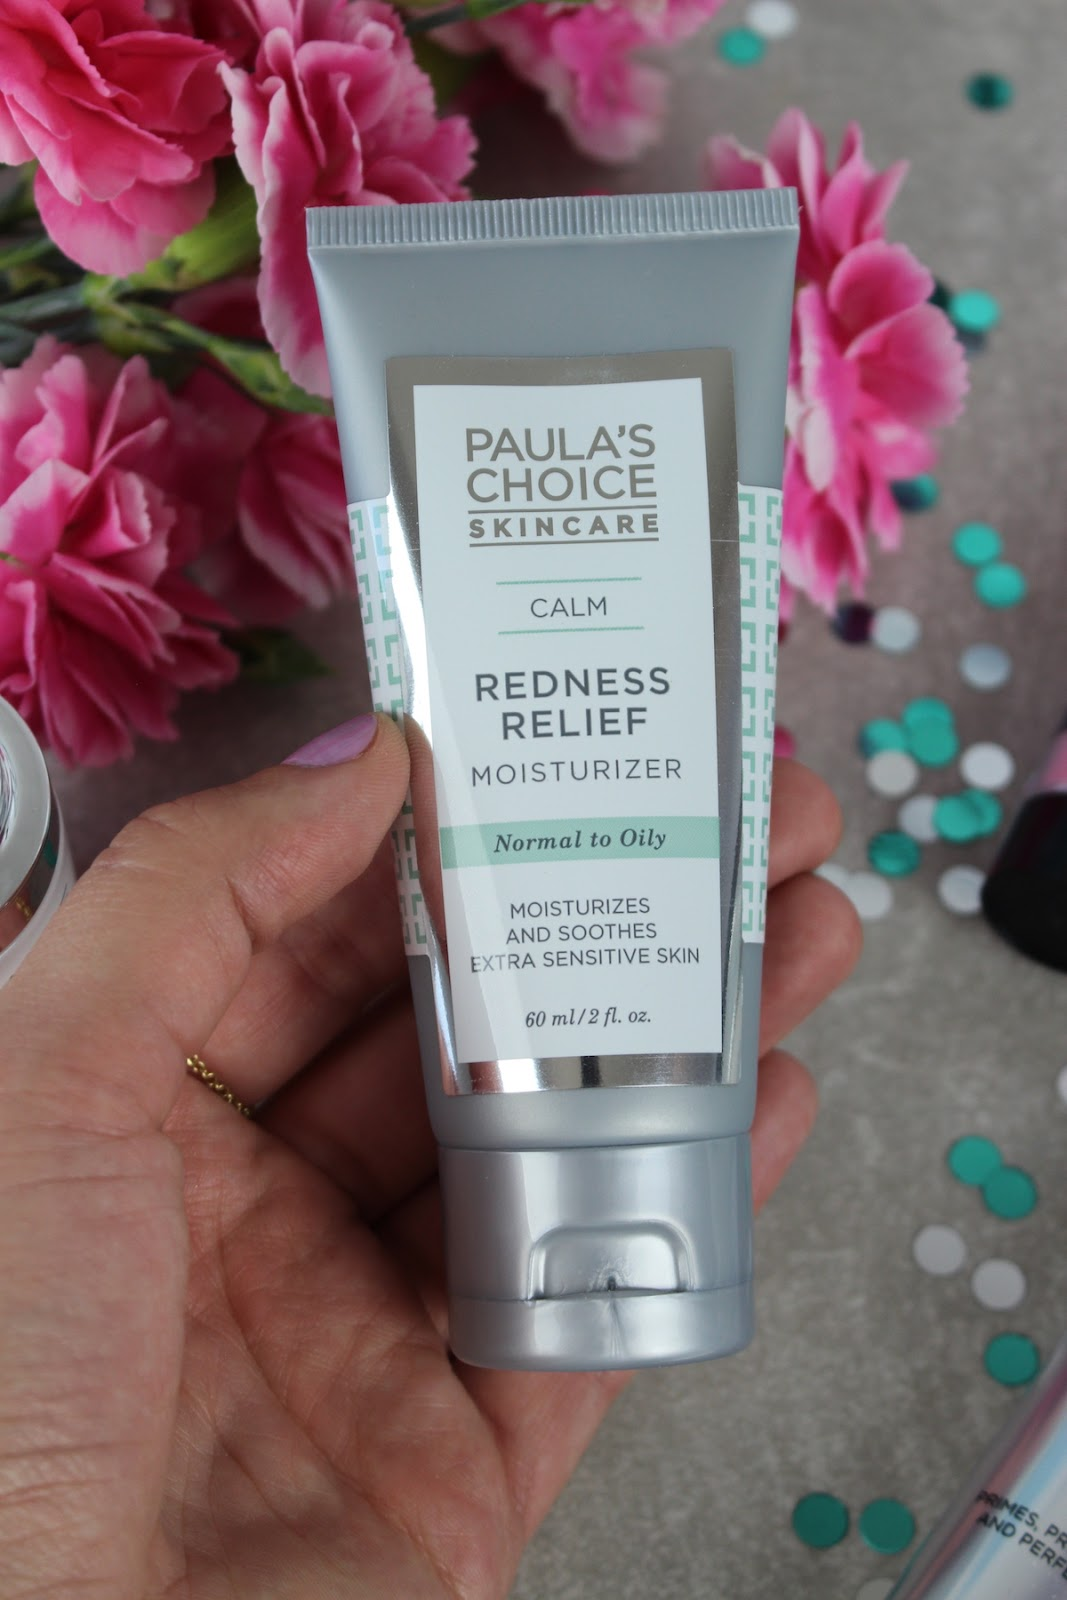 This is a close up of Paula's Choice Redness Relief Moisturizer, surrounded by beautiful pink flowers.